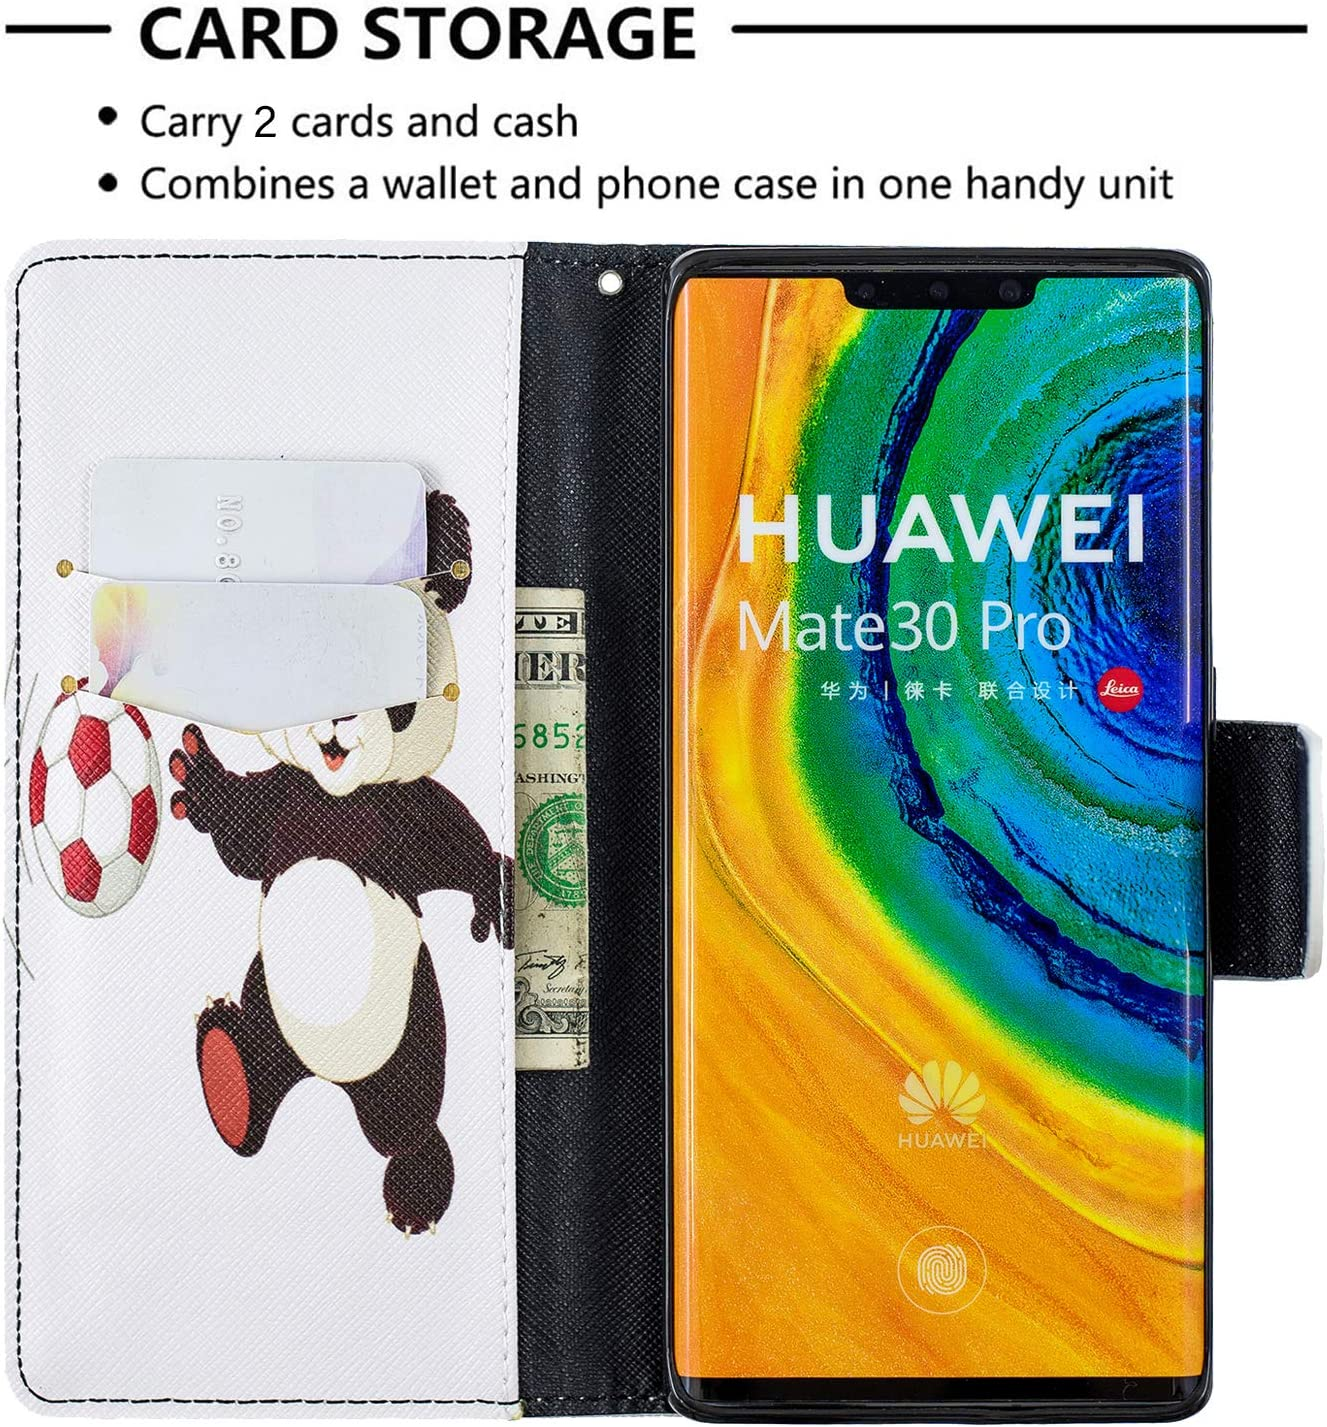 Huawei Mate 30 Pro with Stand Feature Card Holder Magnetic Closure LOBFE090336 L6 Shockproof Flip Case Cover for Huawei Mate30 Pro Lomogo Leather Wallet Case for